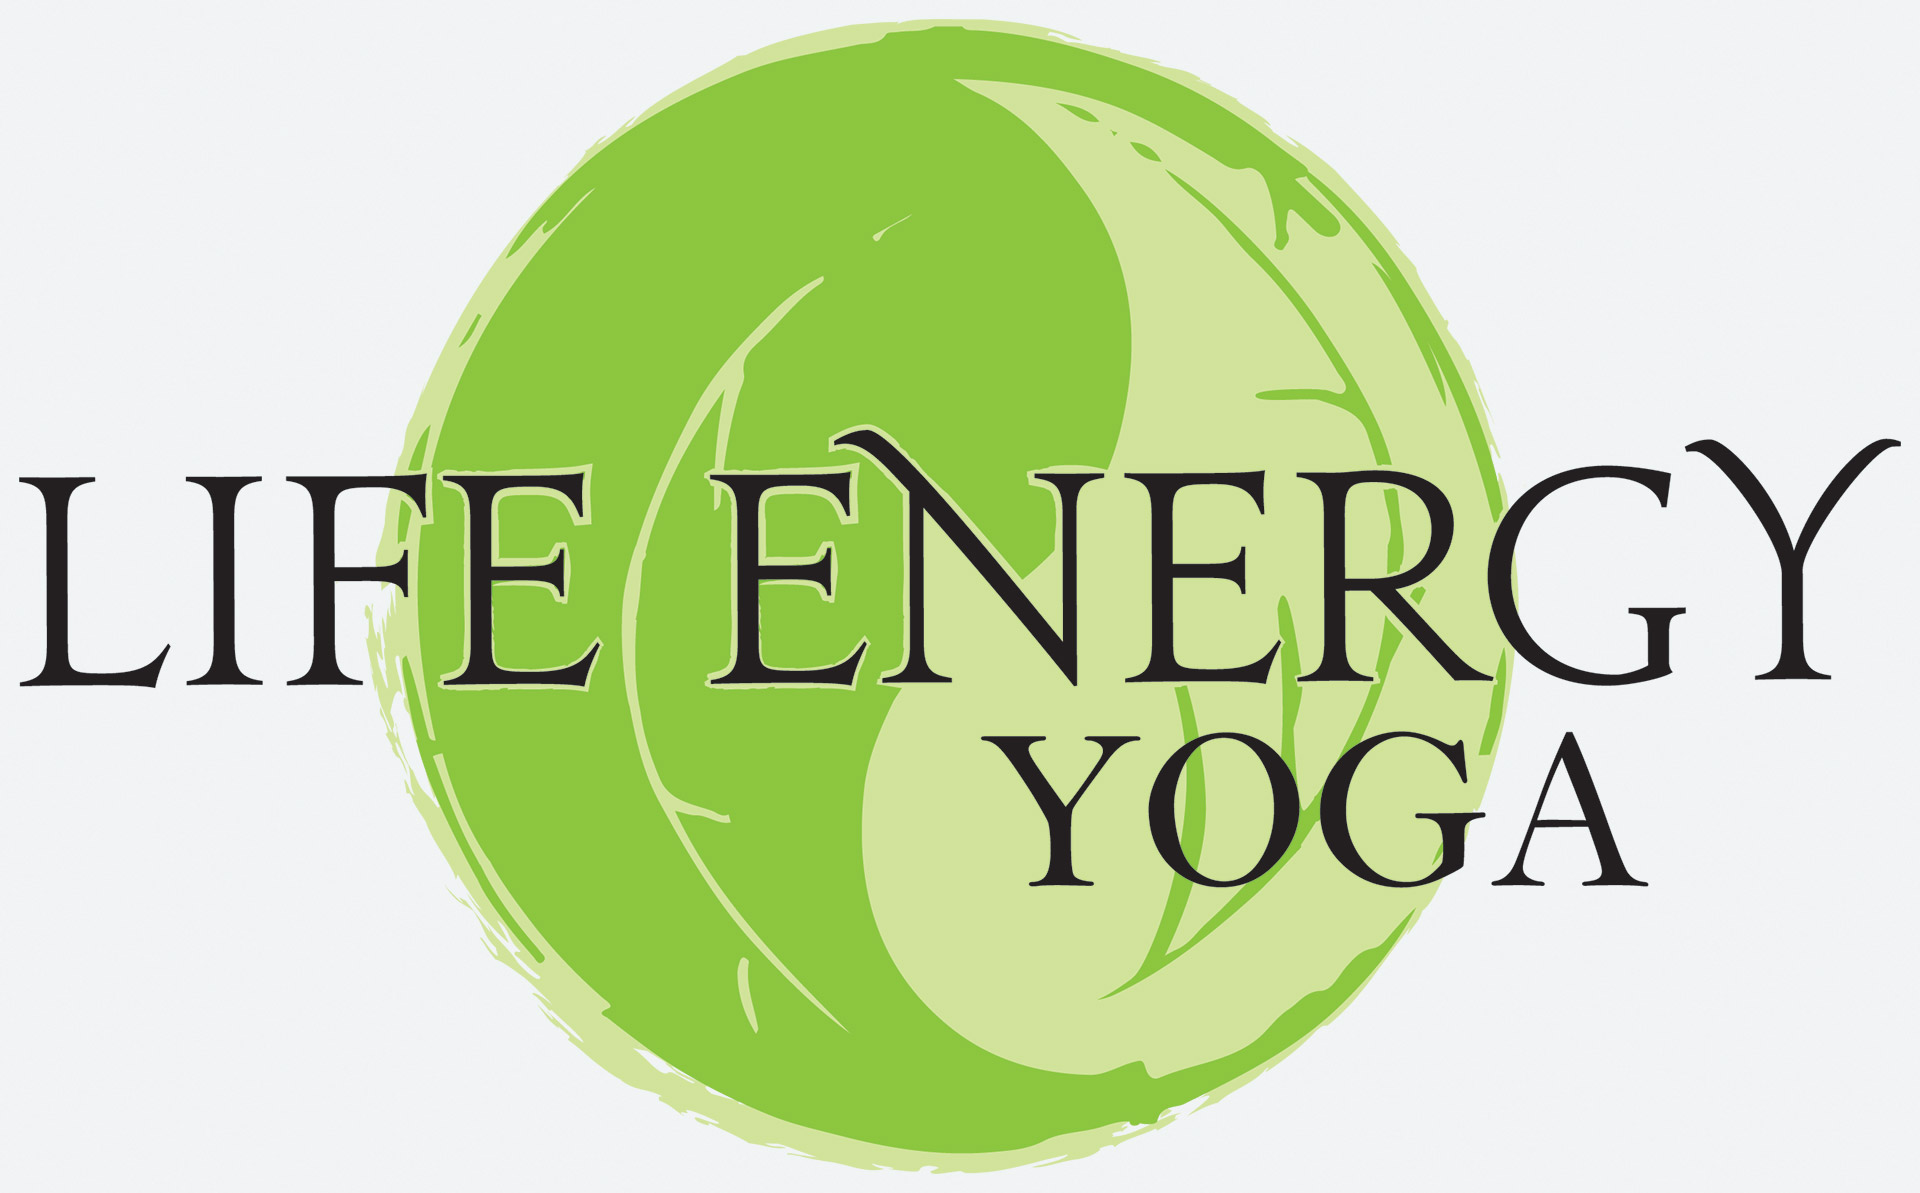 Life Energy Yoga - 5/32 Addison St, ShellharbourNSW 2529 (entrance via Mary St)Ph: 0411968218Email: lifeenergysh@gmail.com